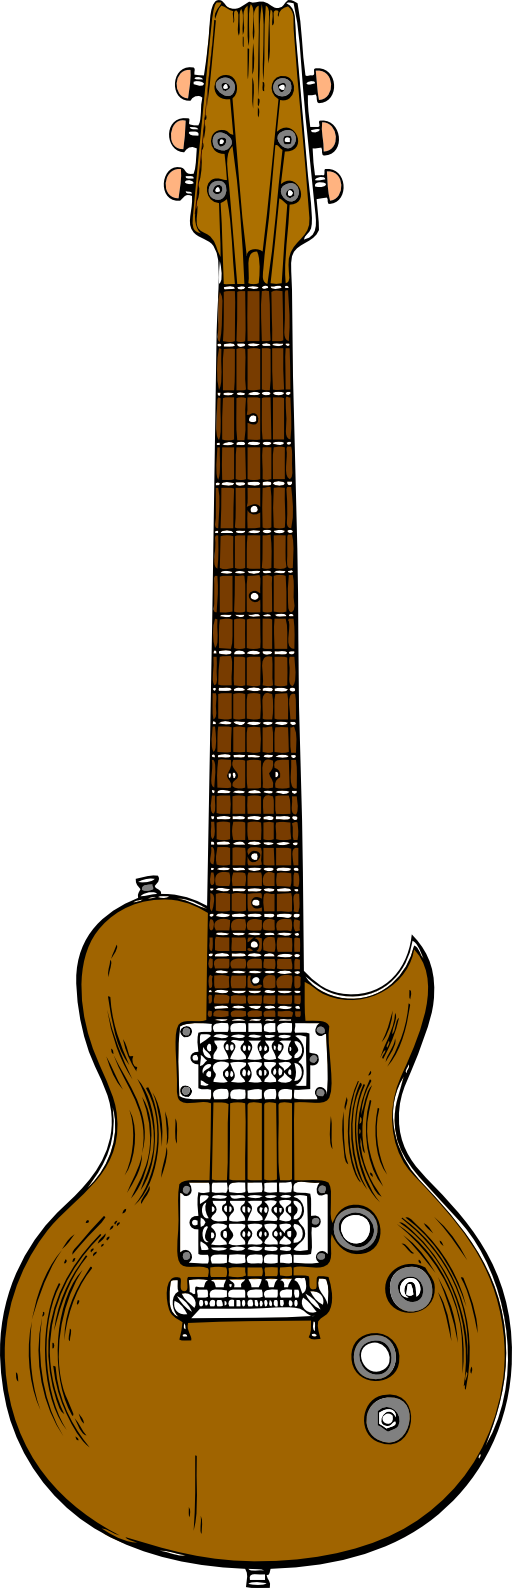 Clipart guitar wooden. I royalty free public